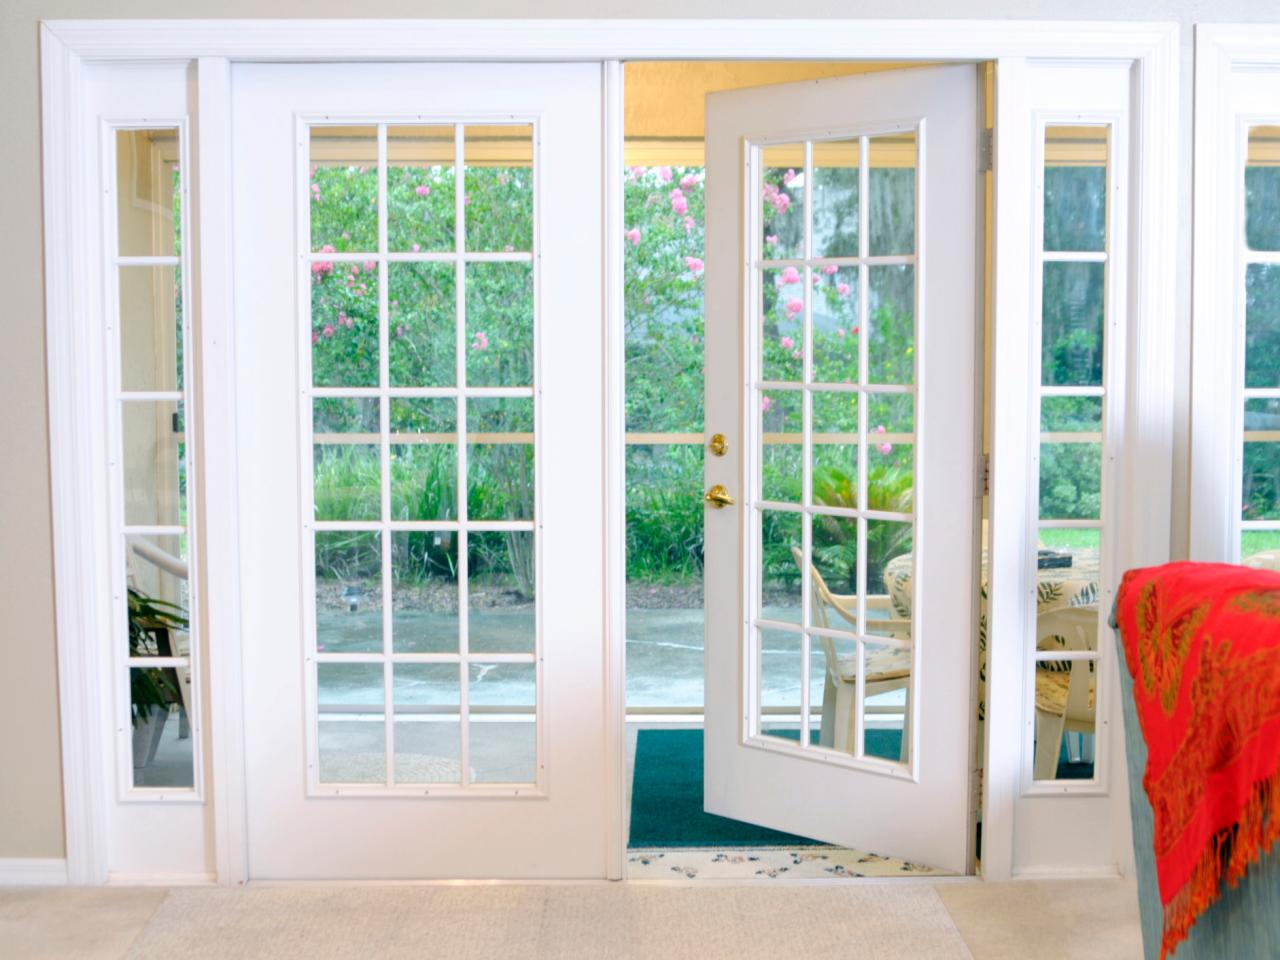 Knoxville Patio Doors | North Knox Siding and Windows on exterior sliding hinges, exterior patio door lock, exterior door security lock, exterior double hung window lock, exterior sliding security door, exterior garage door lock, exterior rim lock, exterior pocket door lock, exterior sliding glass door, exterior door handles, exterior sliding hardware,